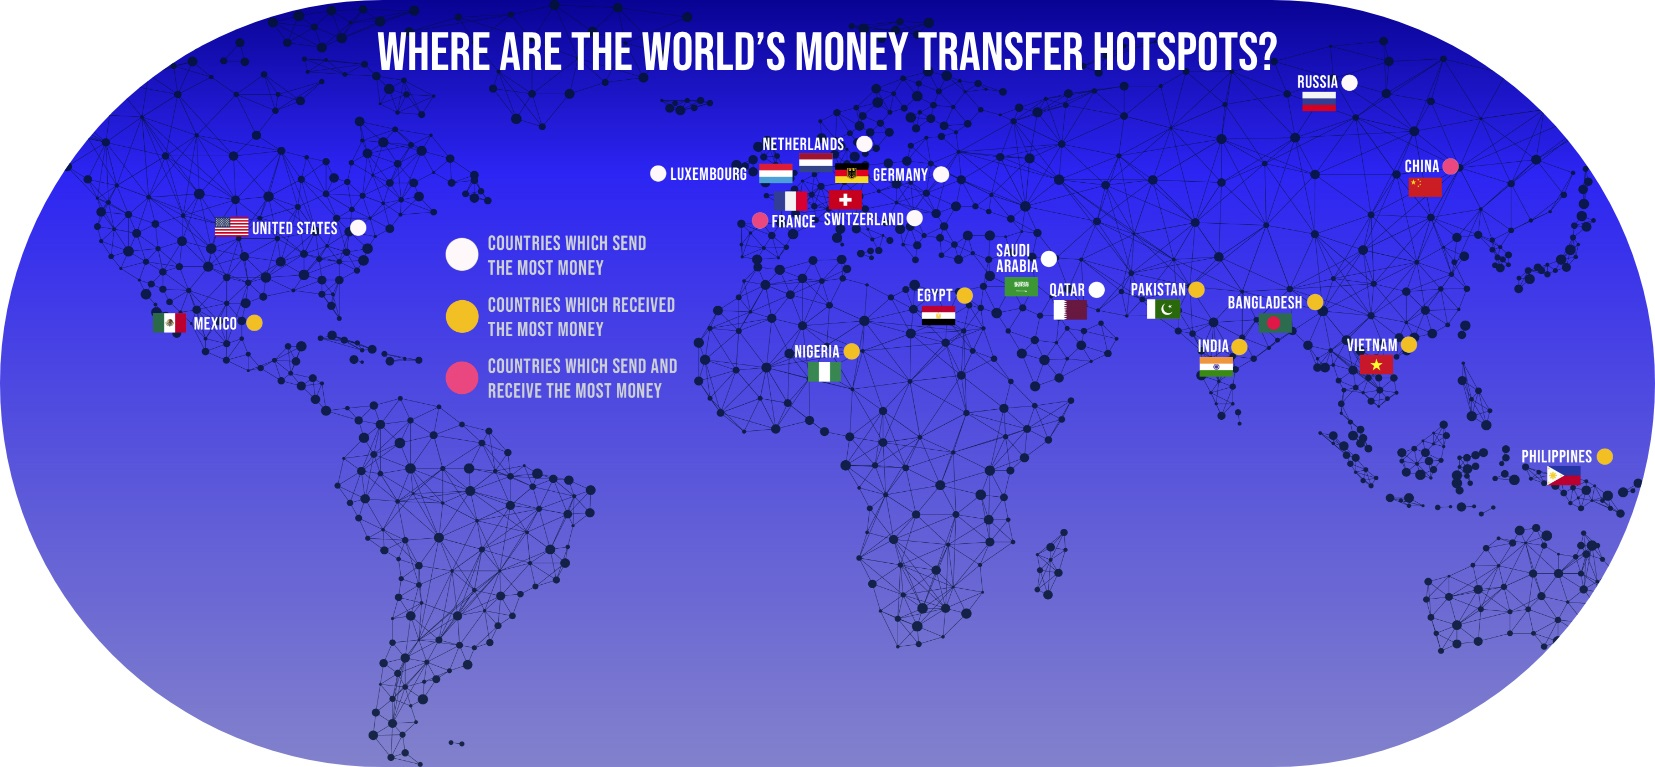 WHICH COUNTRIES SEND THE MOST MONEY OVERSEAS?